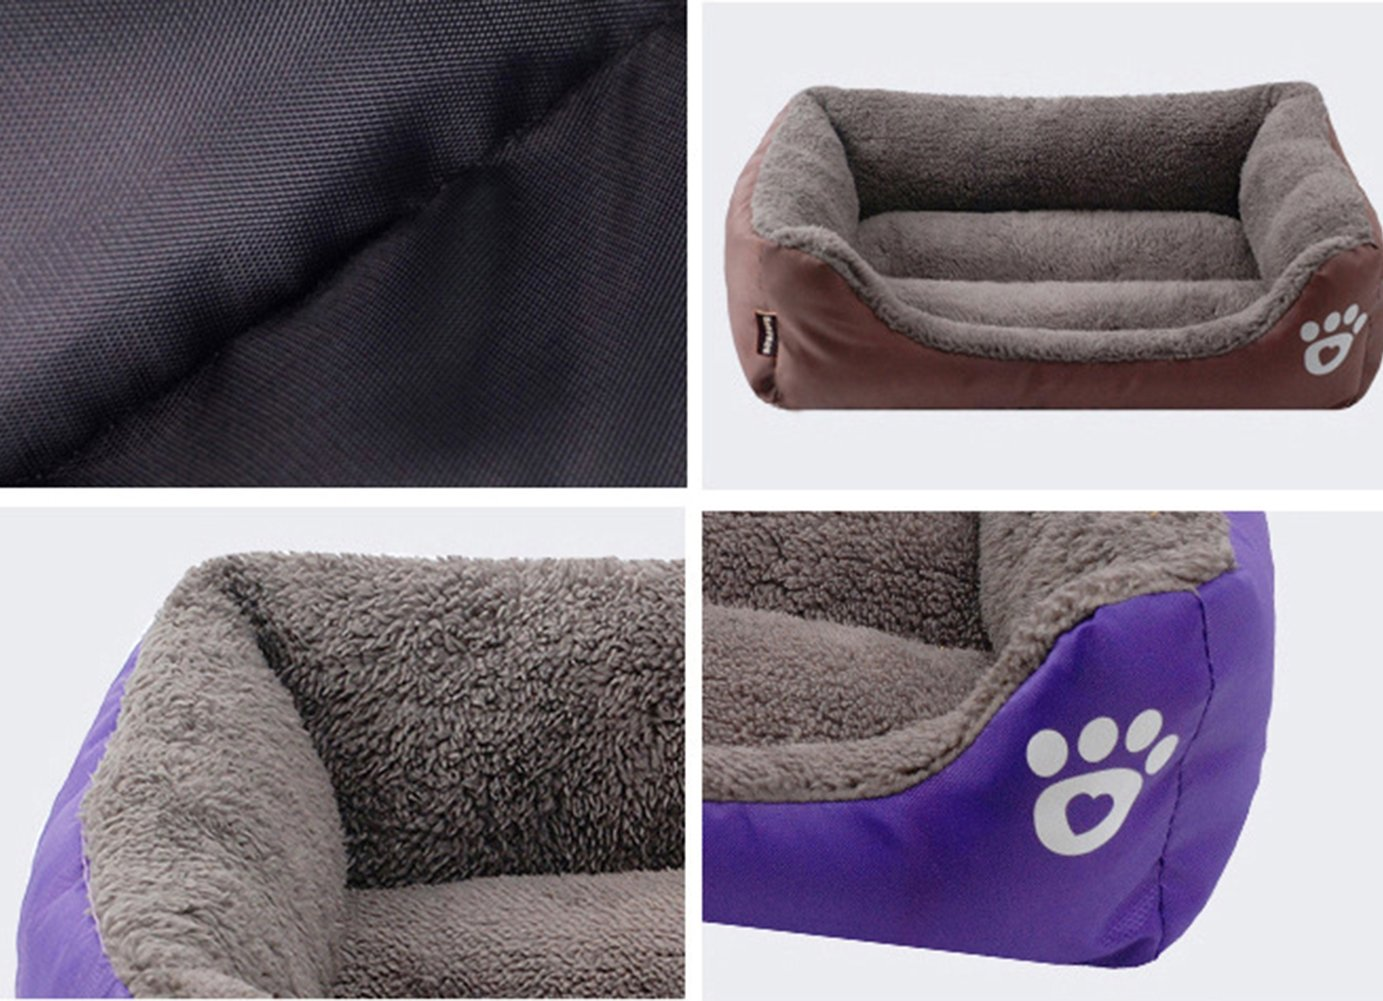 Amazon.com : Liveinu Pet Bed Orthopedic Washable Pets Sofa Bed for Dogs & Cats Nonslip Waterproof Bottom Lounge Sleeper Dog Bed : Pet Supplies